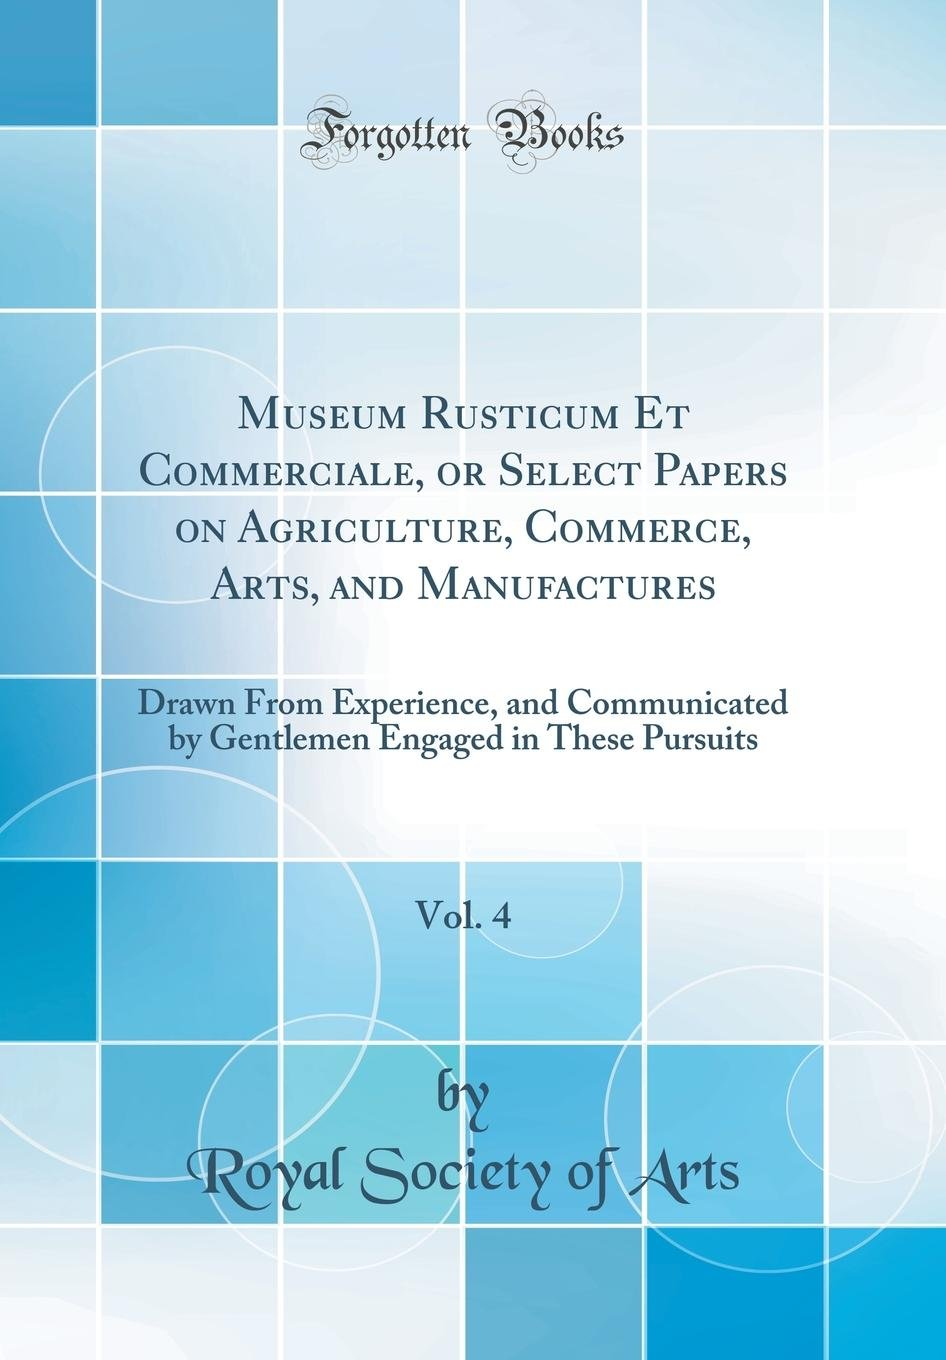 Museum Rusticum Et Commerciale, or Select Papers on Agriculture, Commerce, Arts, and Manufactures, Vol. 4: Drawn from Experience, and Communicated by ... Engaged in These Pursuits (Classic Reprint) pdf epub